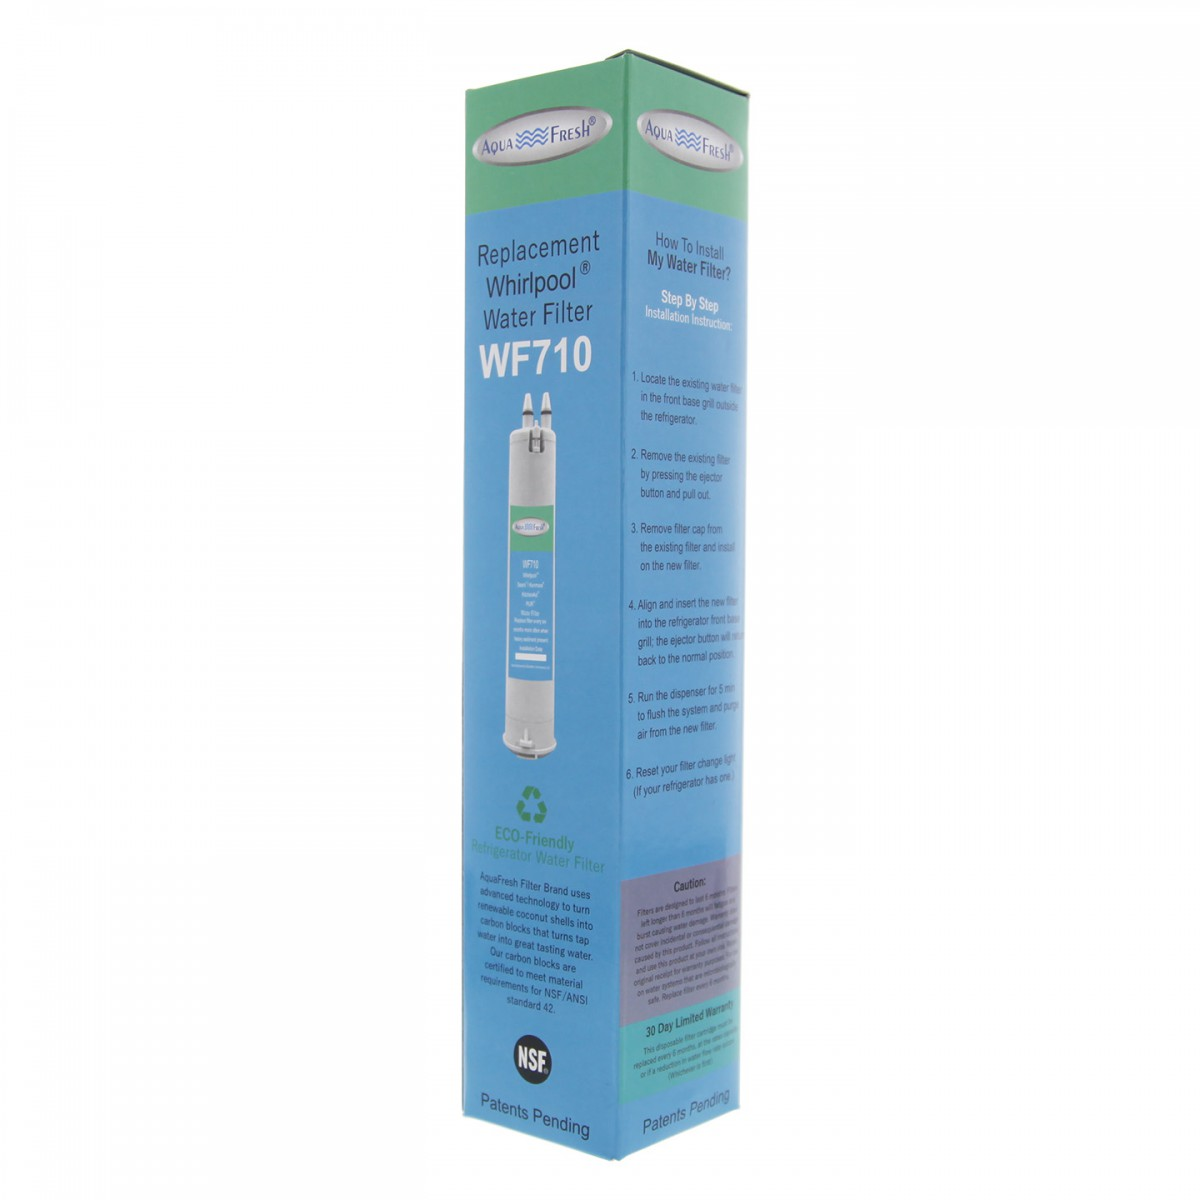 4396841 4396710 Edr3rxd1 Pur Filter 3 Whirlpool